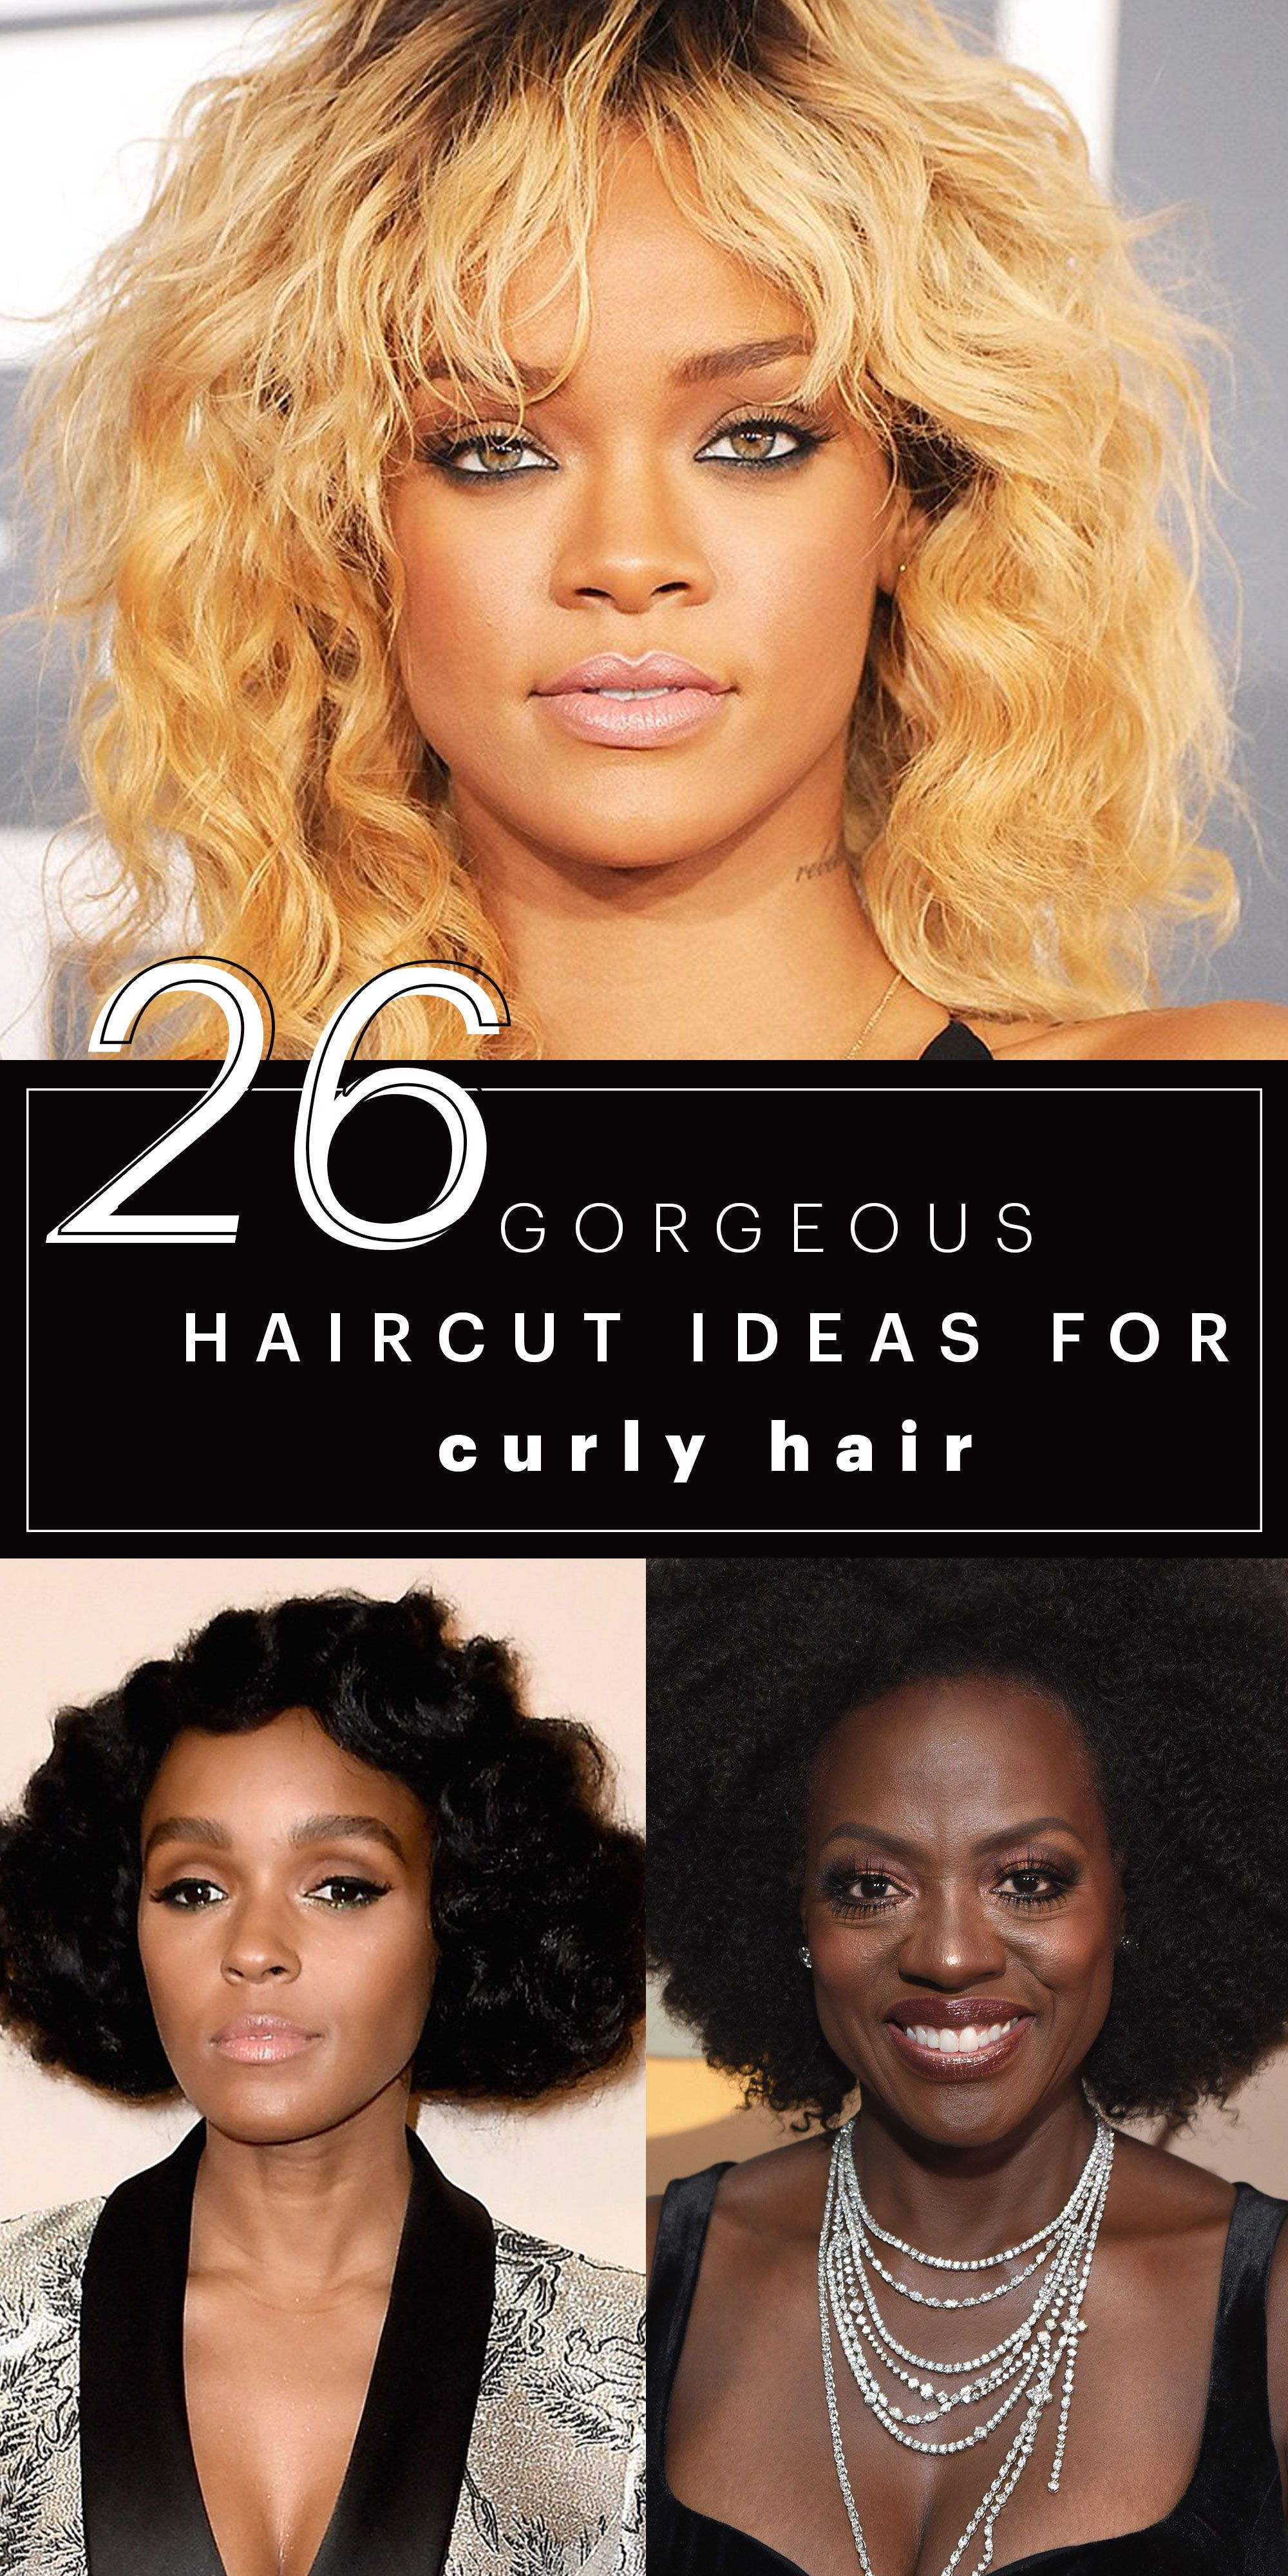 26 Haircuts That Look AMAZING on Naturally Curly Hair